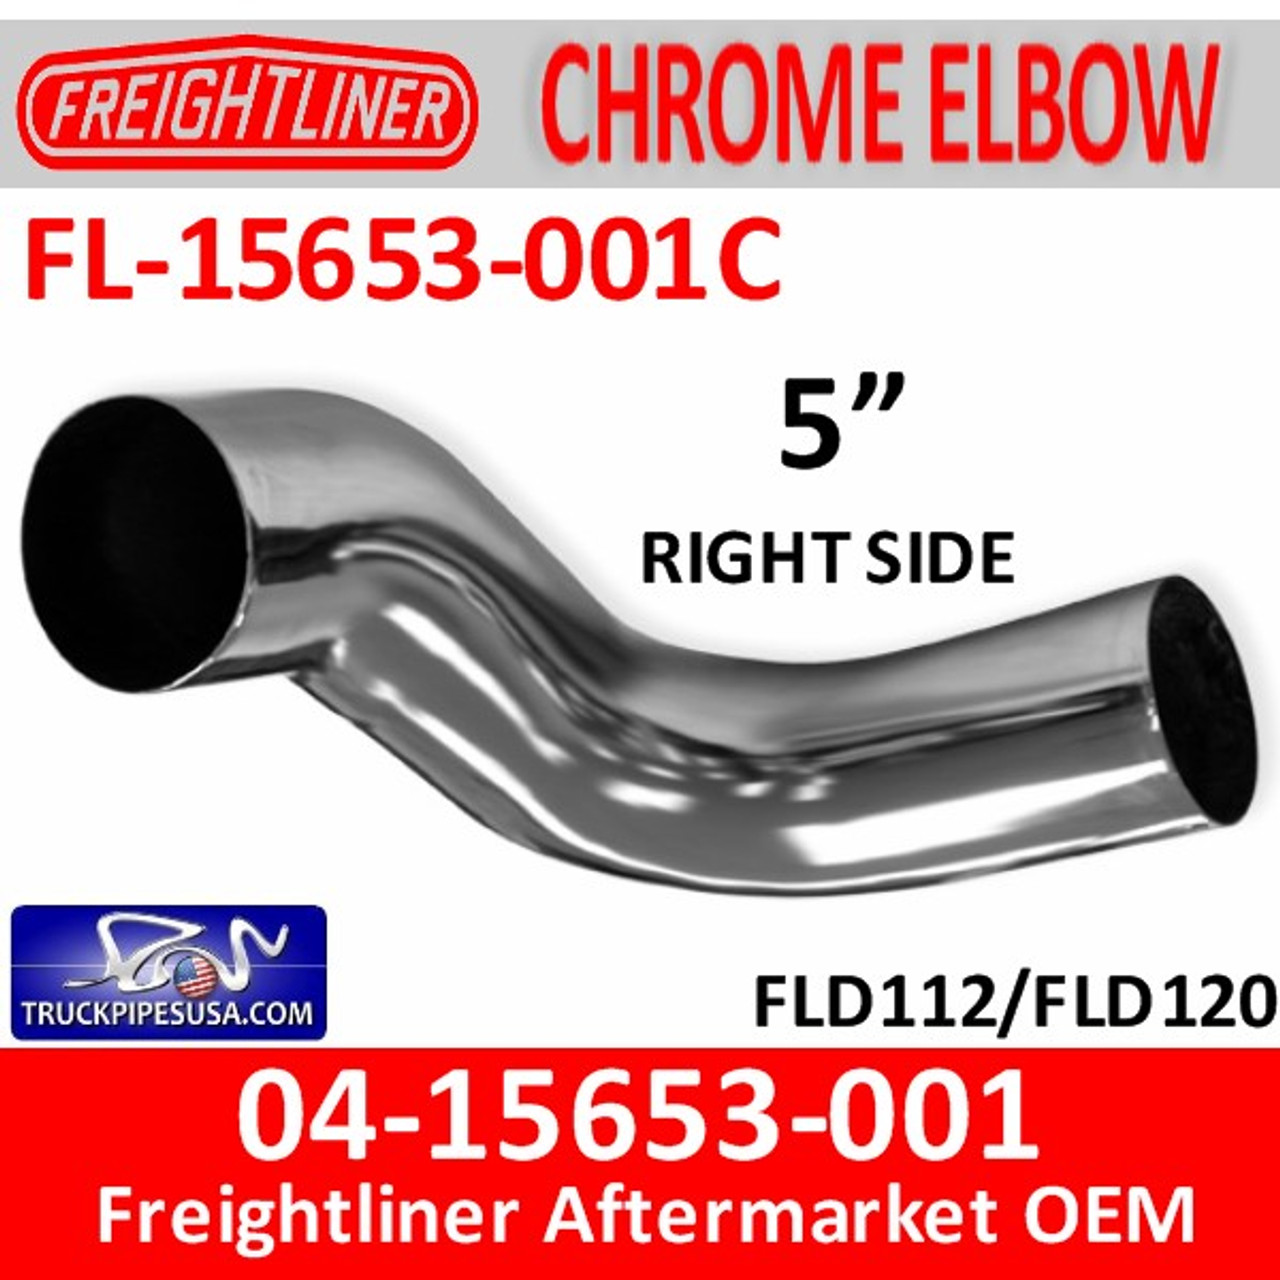 04-15653-001C Freightliner Chrome Right Exhaust Elbow FL-15653-001C